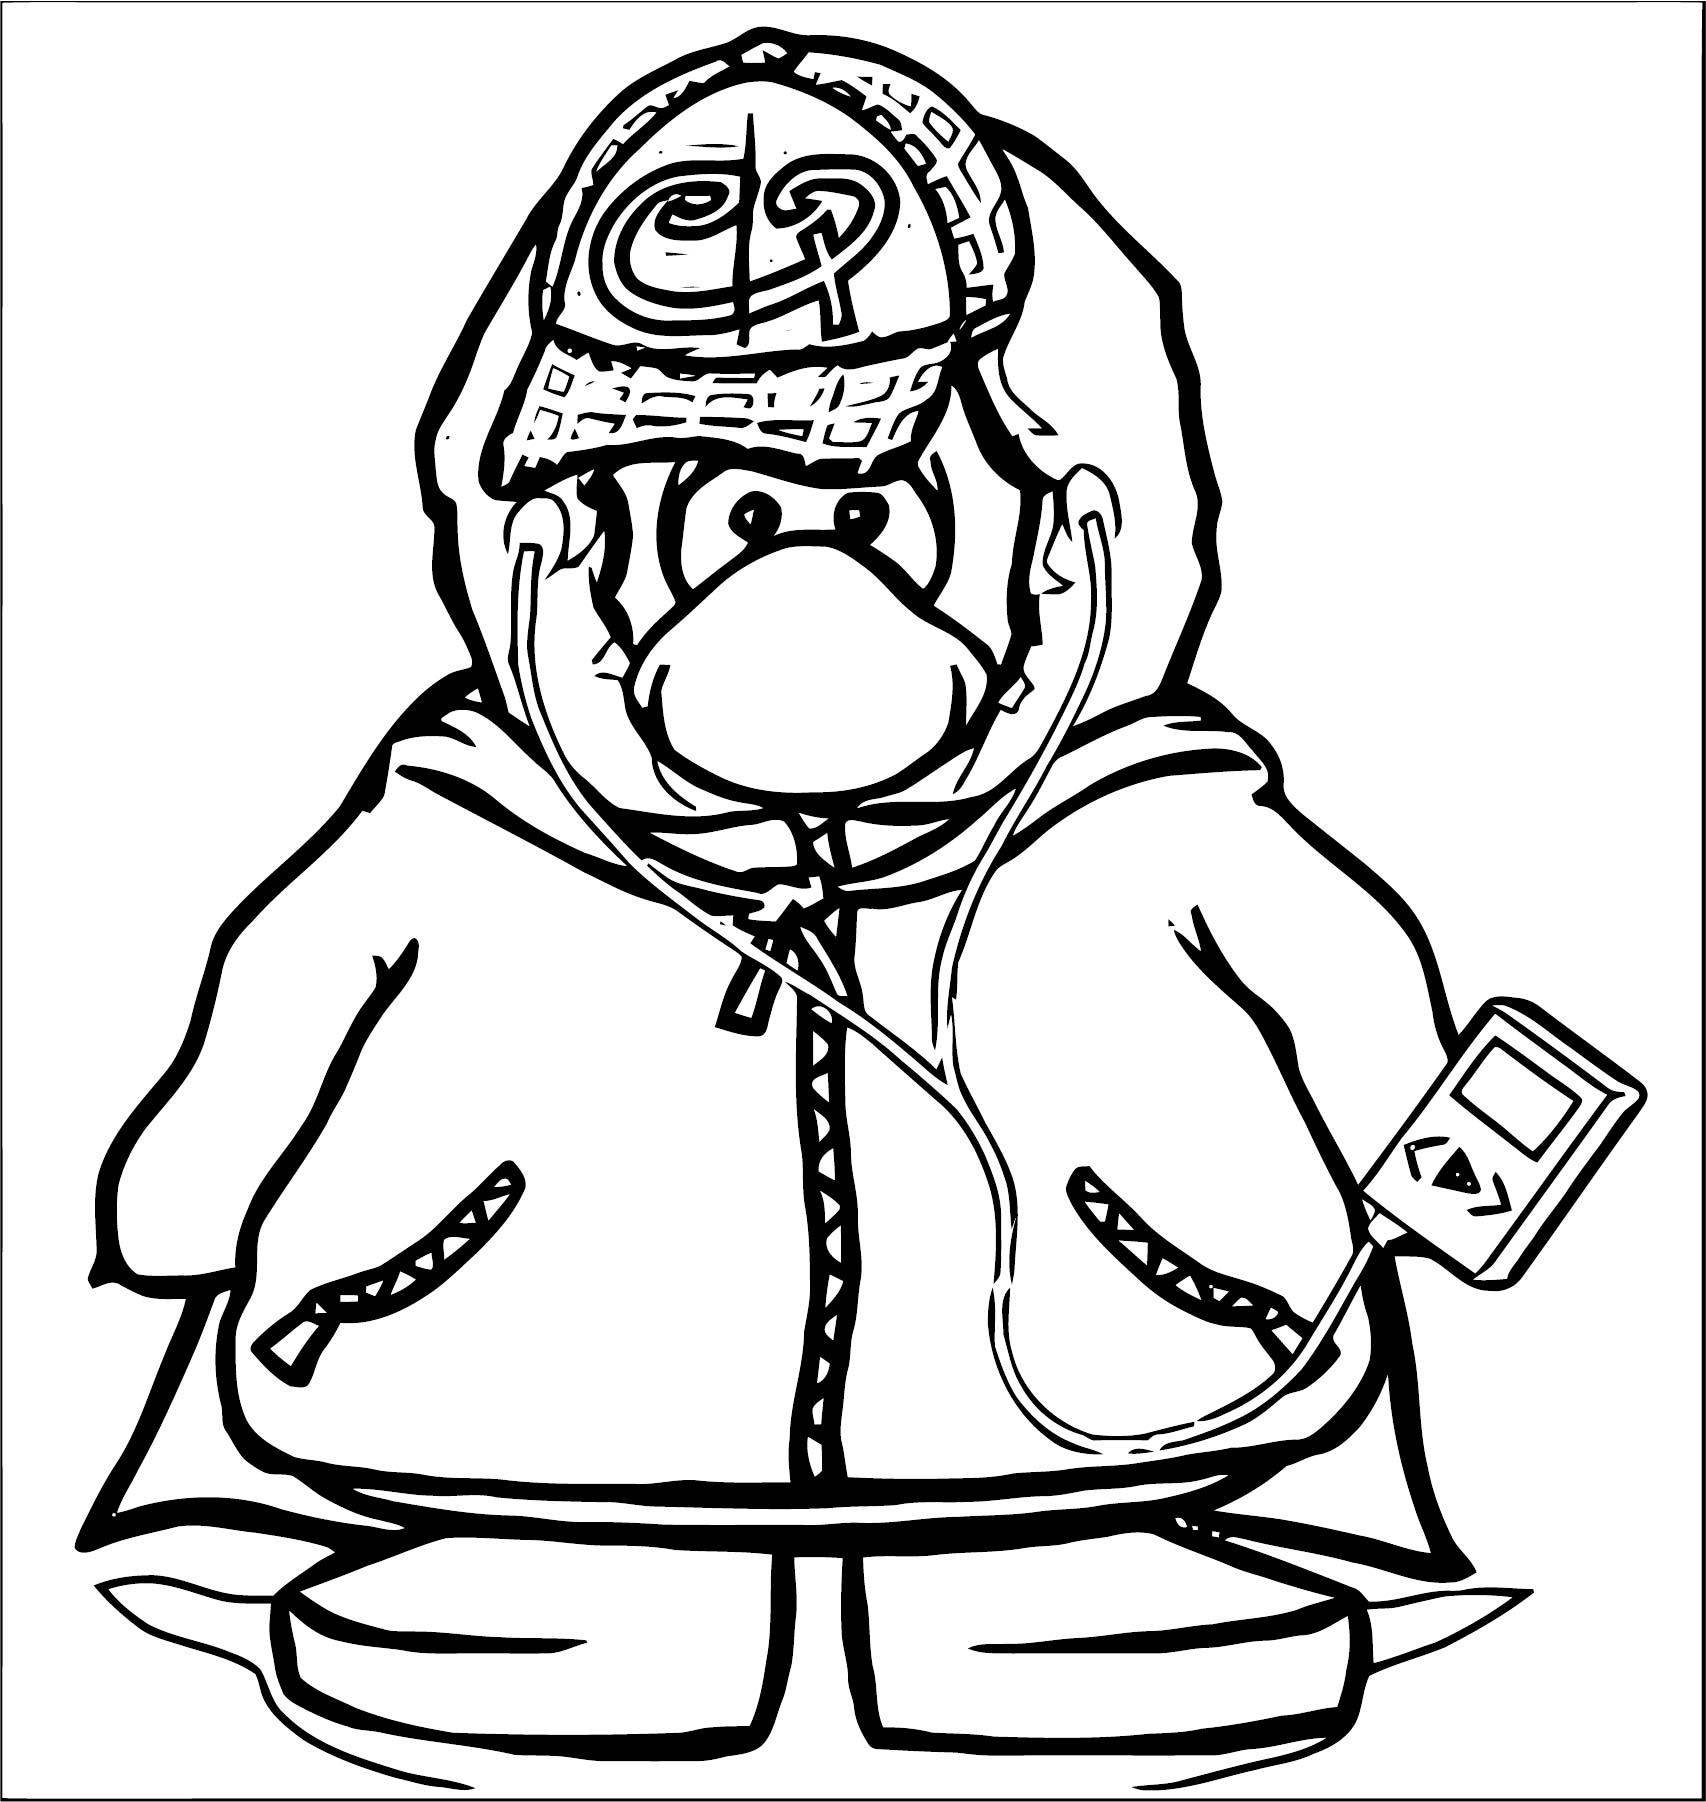 Club Penguin Toy Codes Coloring Page